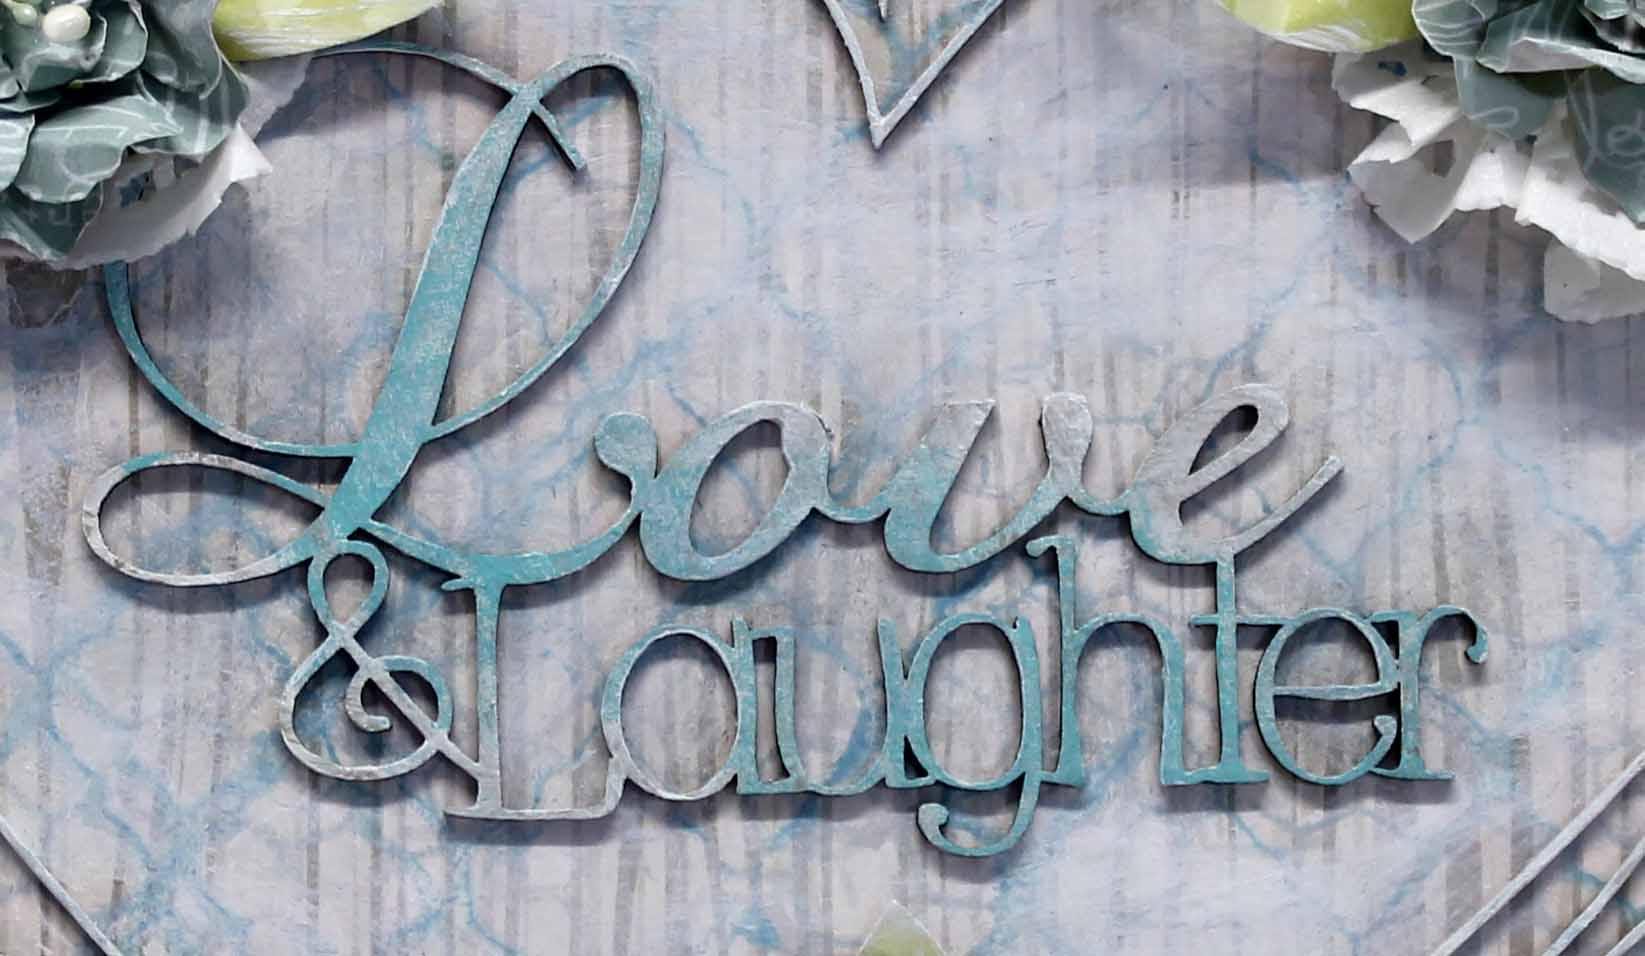 Love and laughter wall decor - Anita Bownds oct 2014 Scrapfx DT (2)